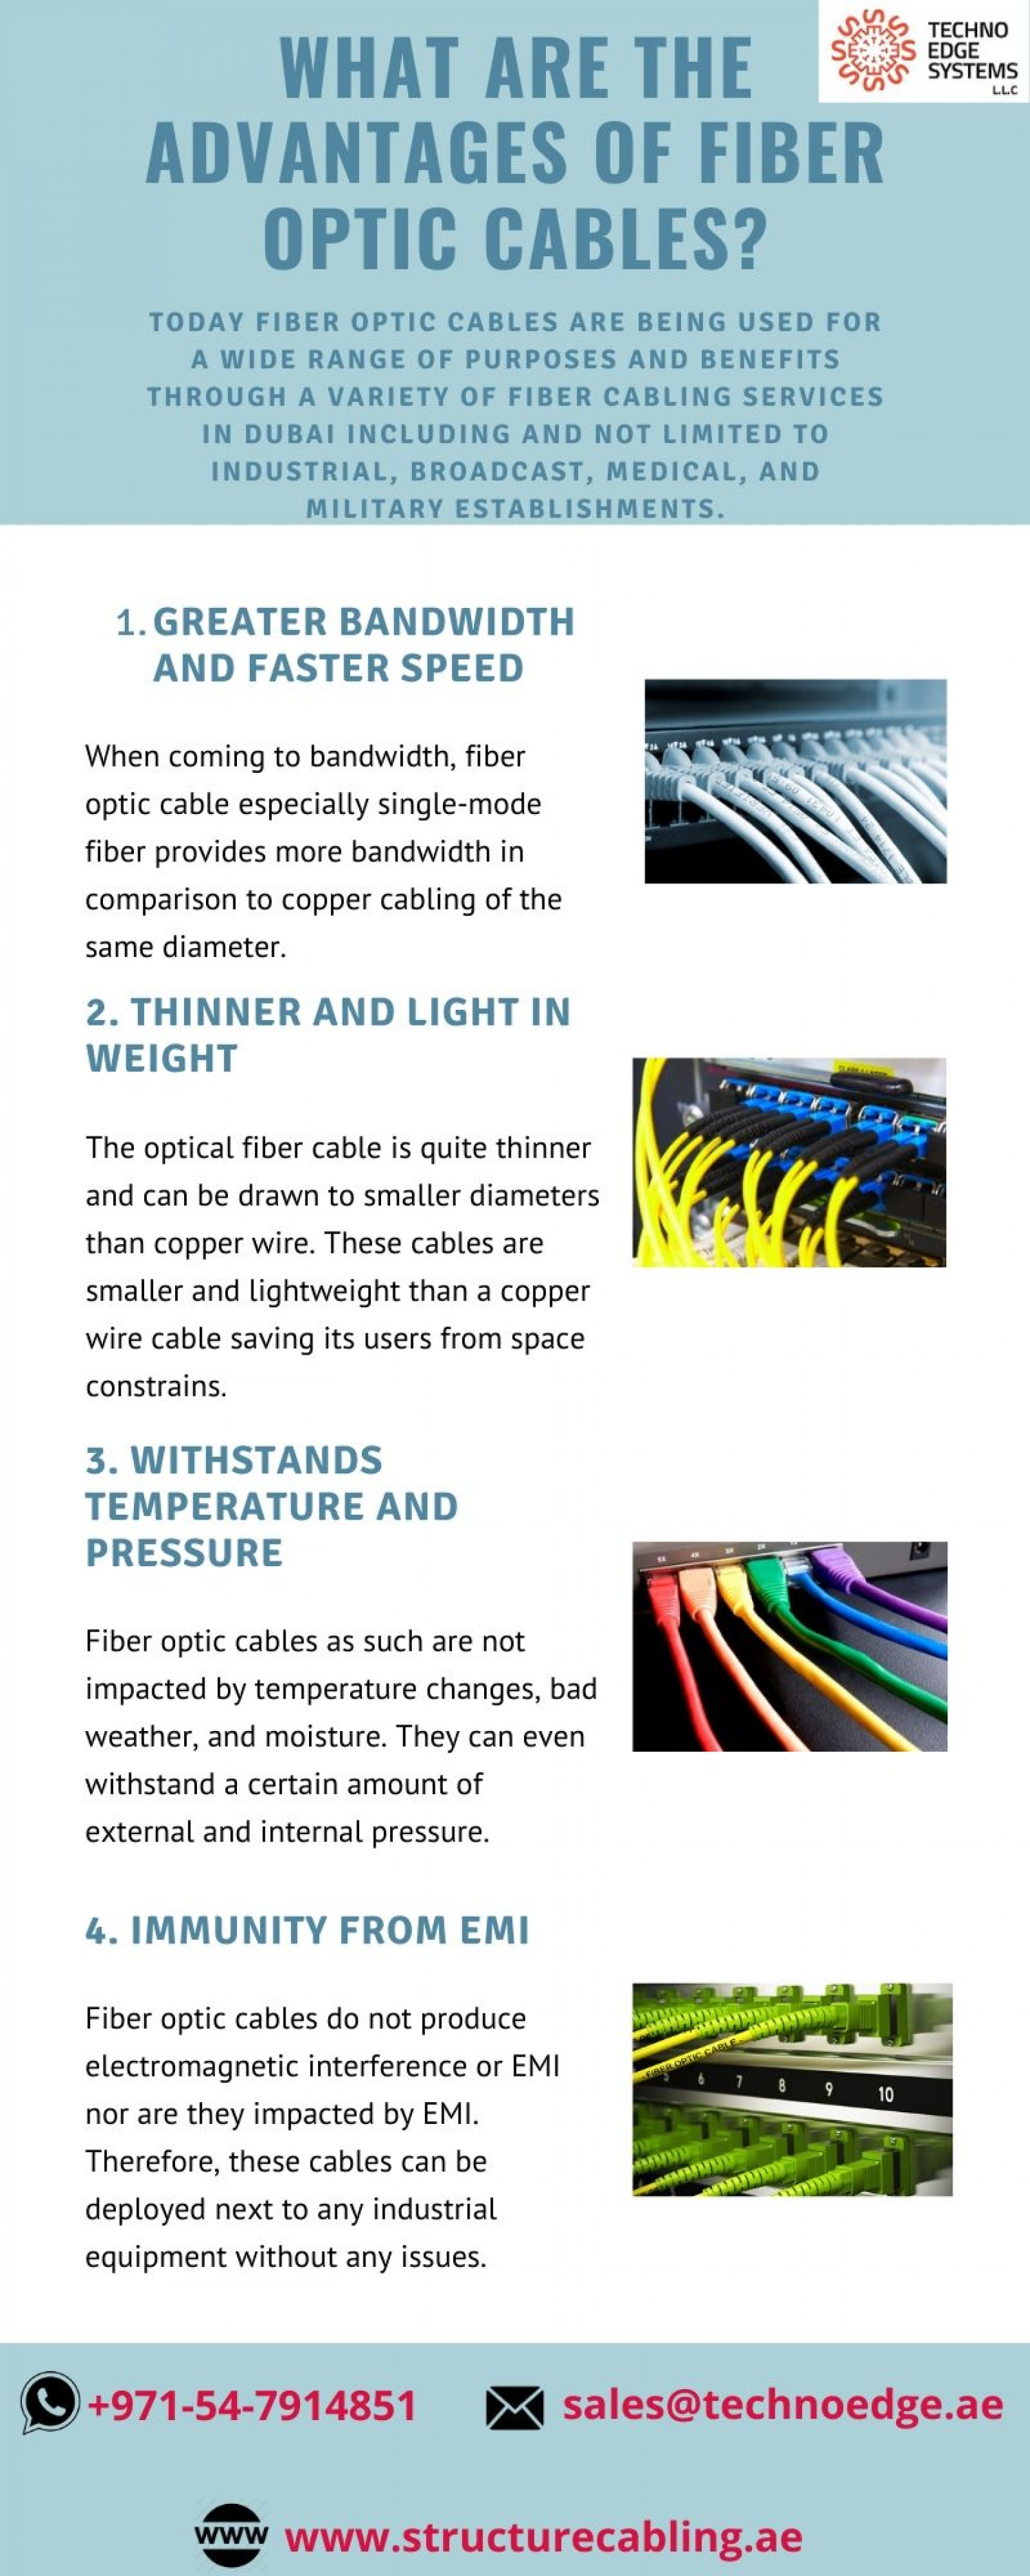 What are the Advantages of Fiber Optic Cables? Infographic